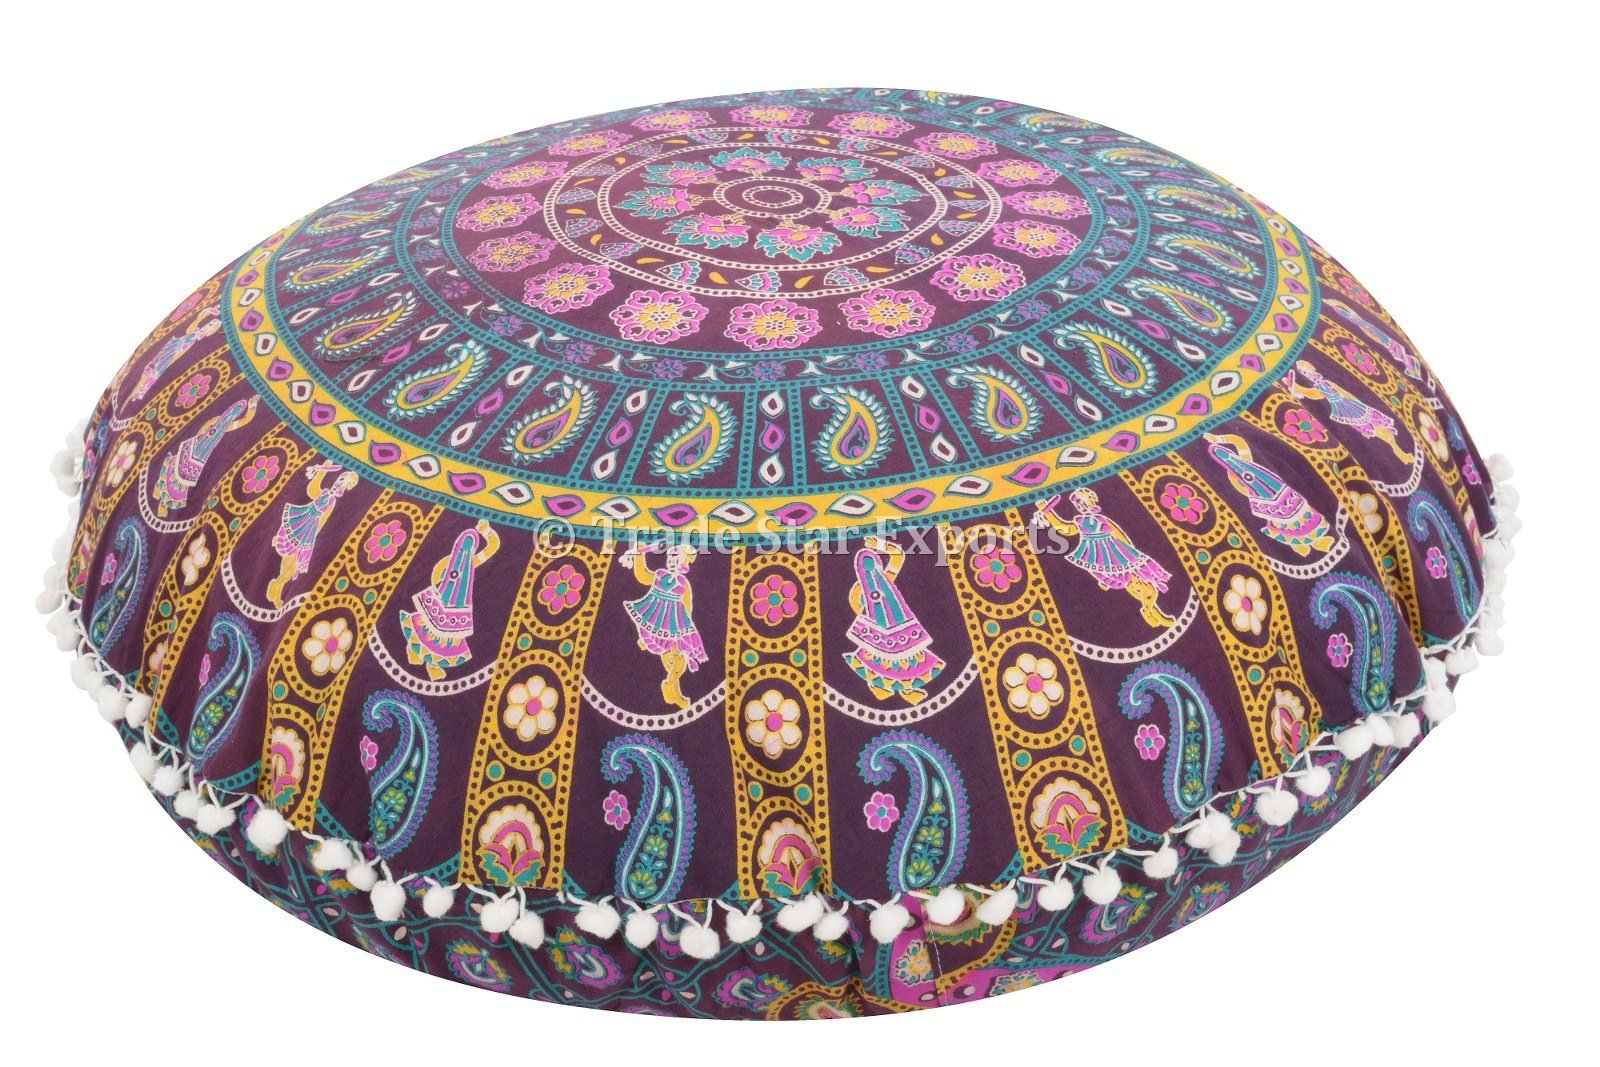 Large 32'' Round Pillow Cover, Decorative Mandala Pillow Sham, Indian Bohemian Ottoman Poufs, Pom Pom Pillow Cases, Outdoor Cushion Cover (Pattern 2) by Trade Star Exports